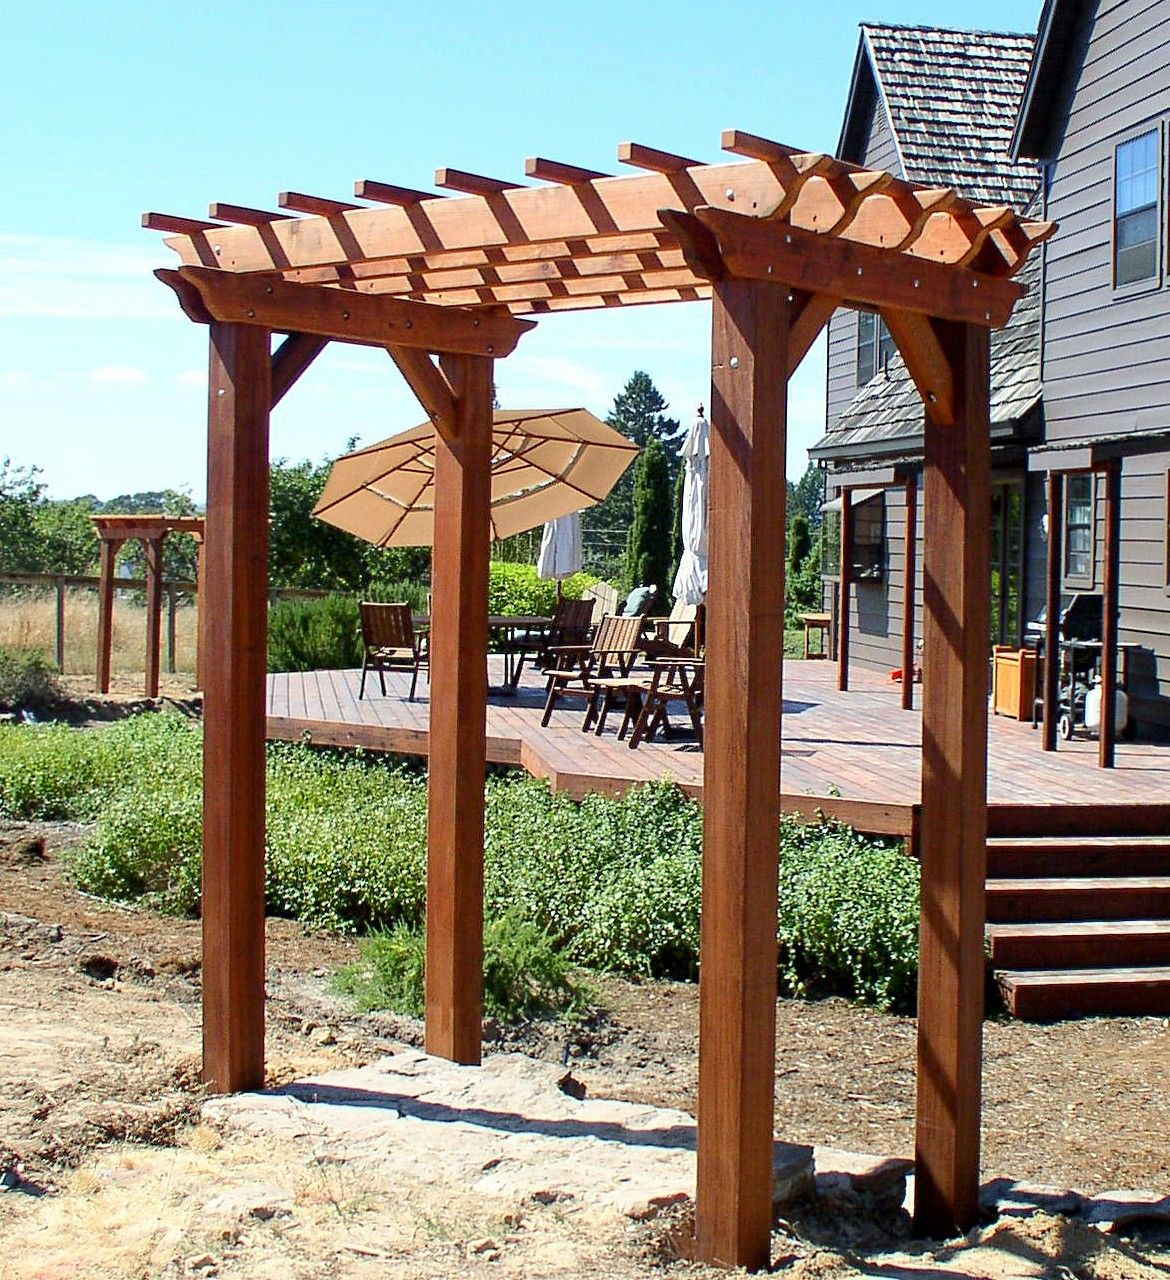 Arbor Design Ideas grape trellis with bench swing arbor design ideas pictures remodel and decor Arbor Design Ideas Landscape Contemporary With Walkway Garden